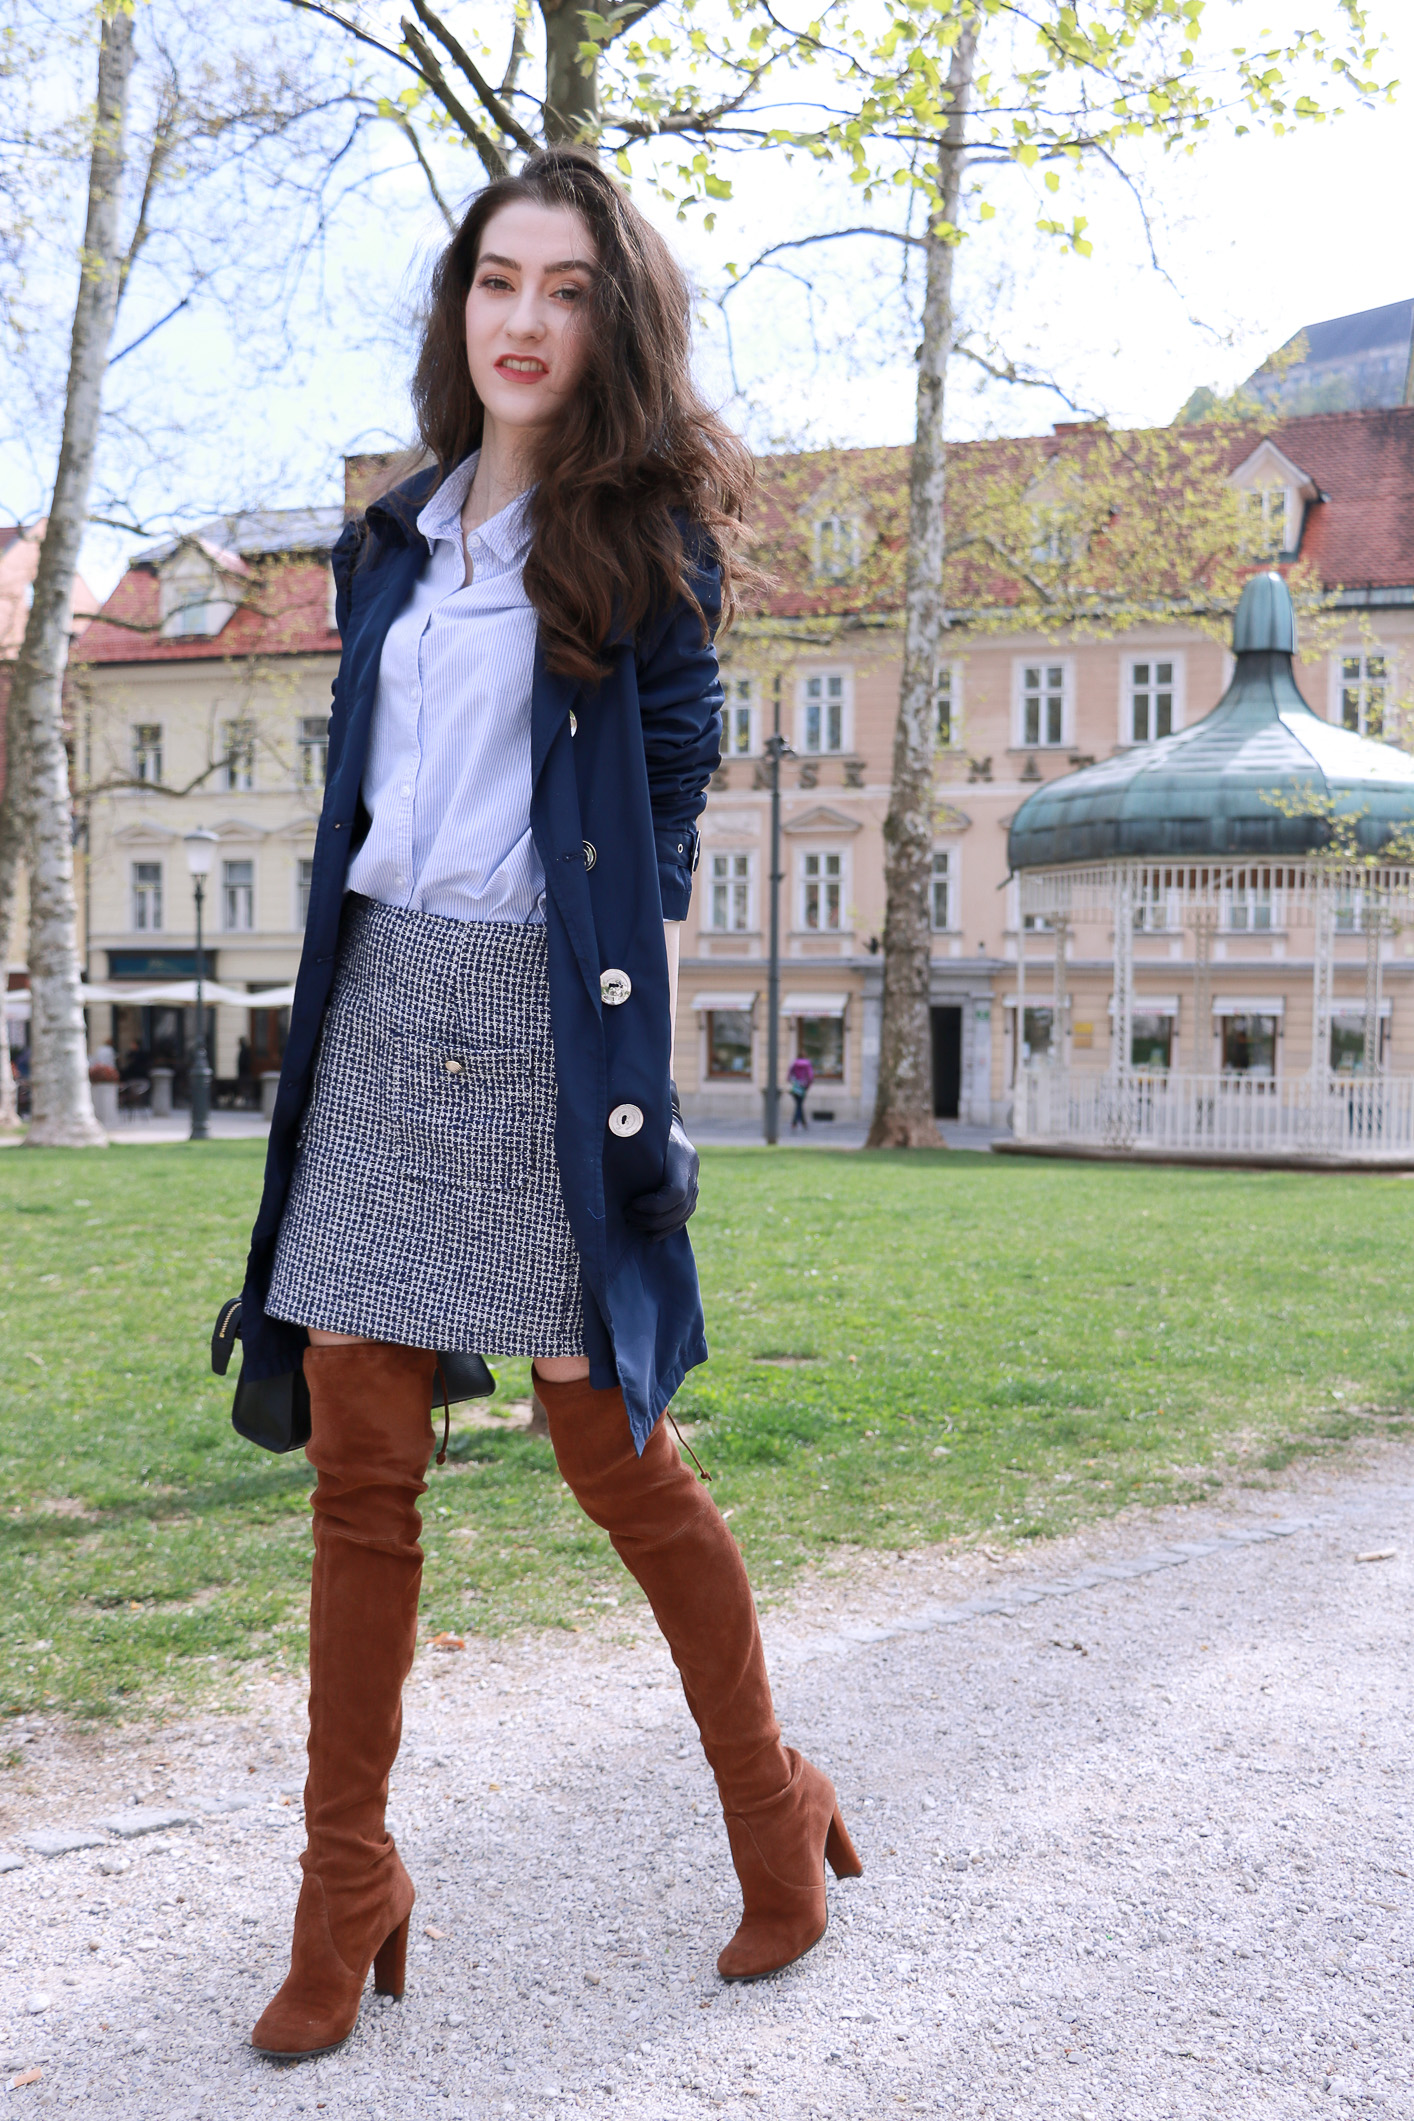 Fashion blogger Veronika Lipar of Brunette From Wall Street sharing how to style over the knee boots in summer